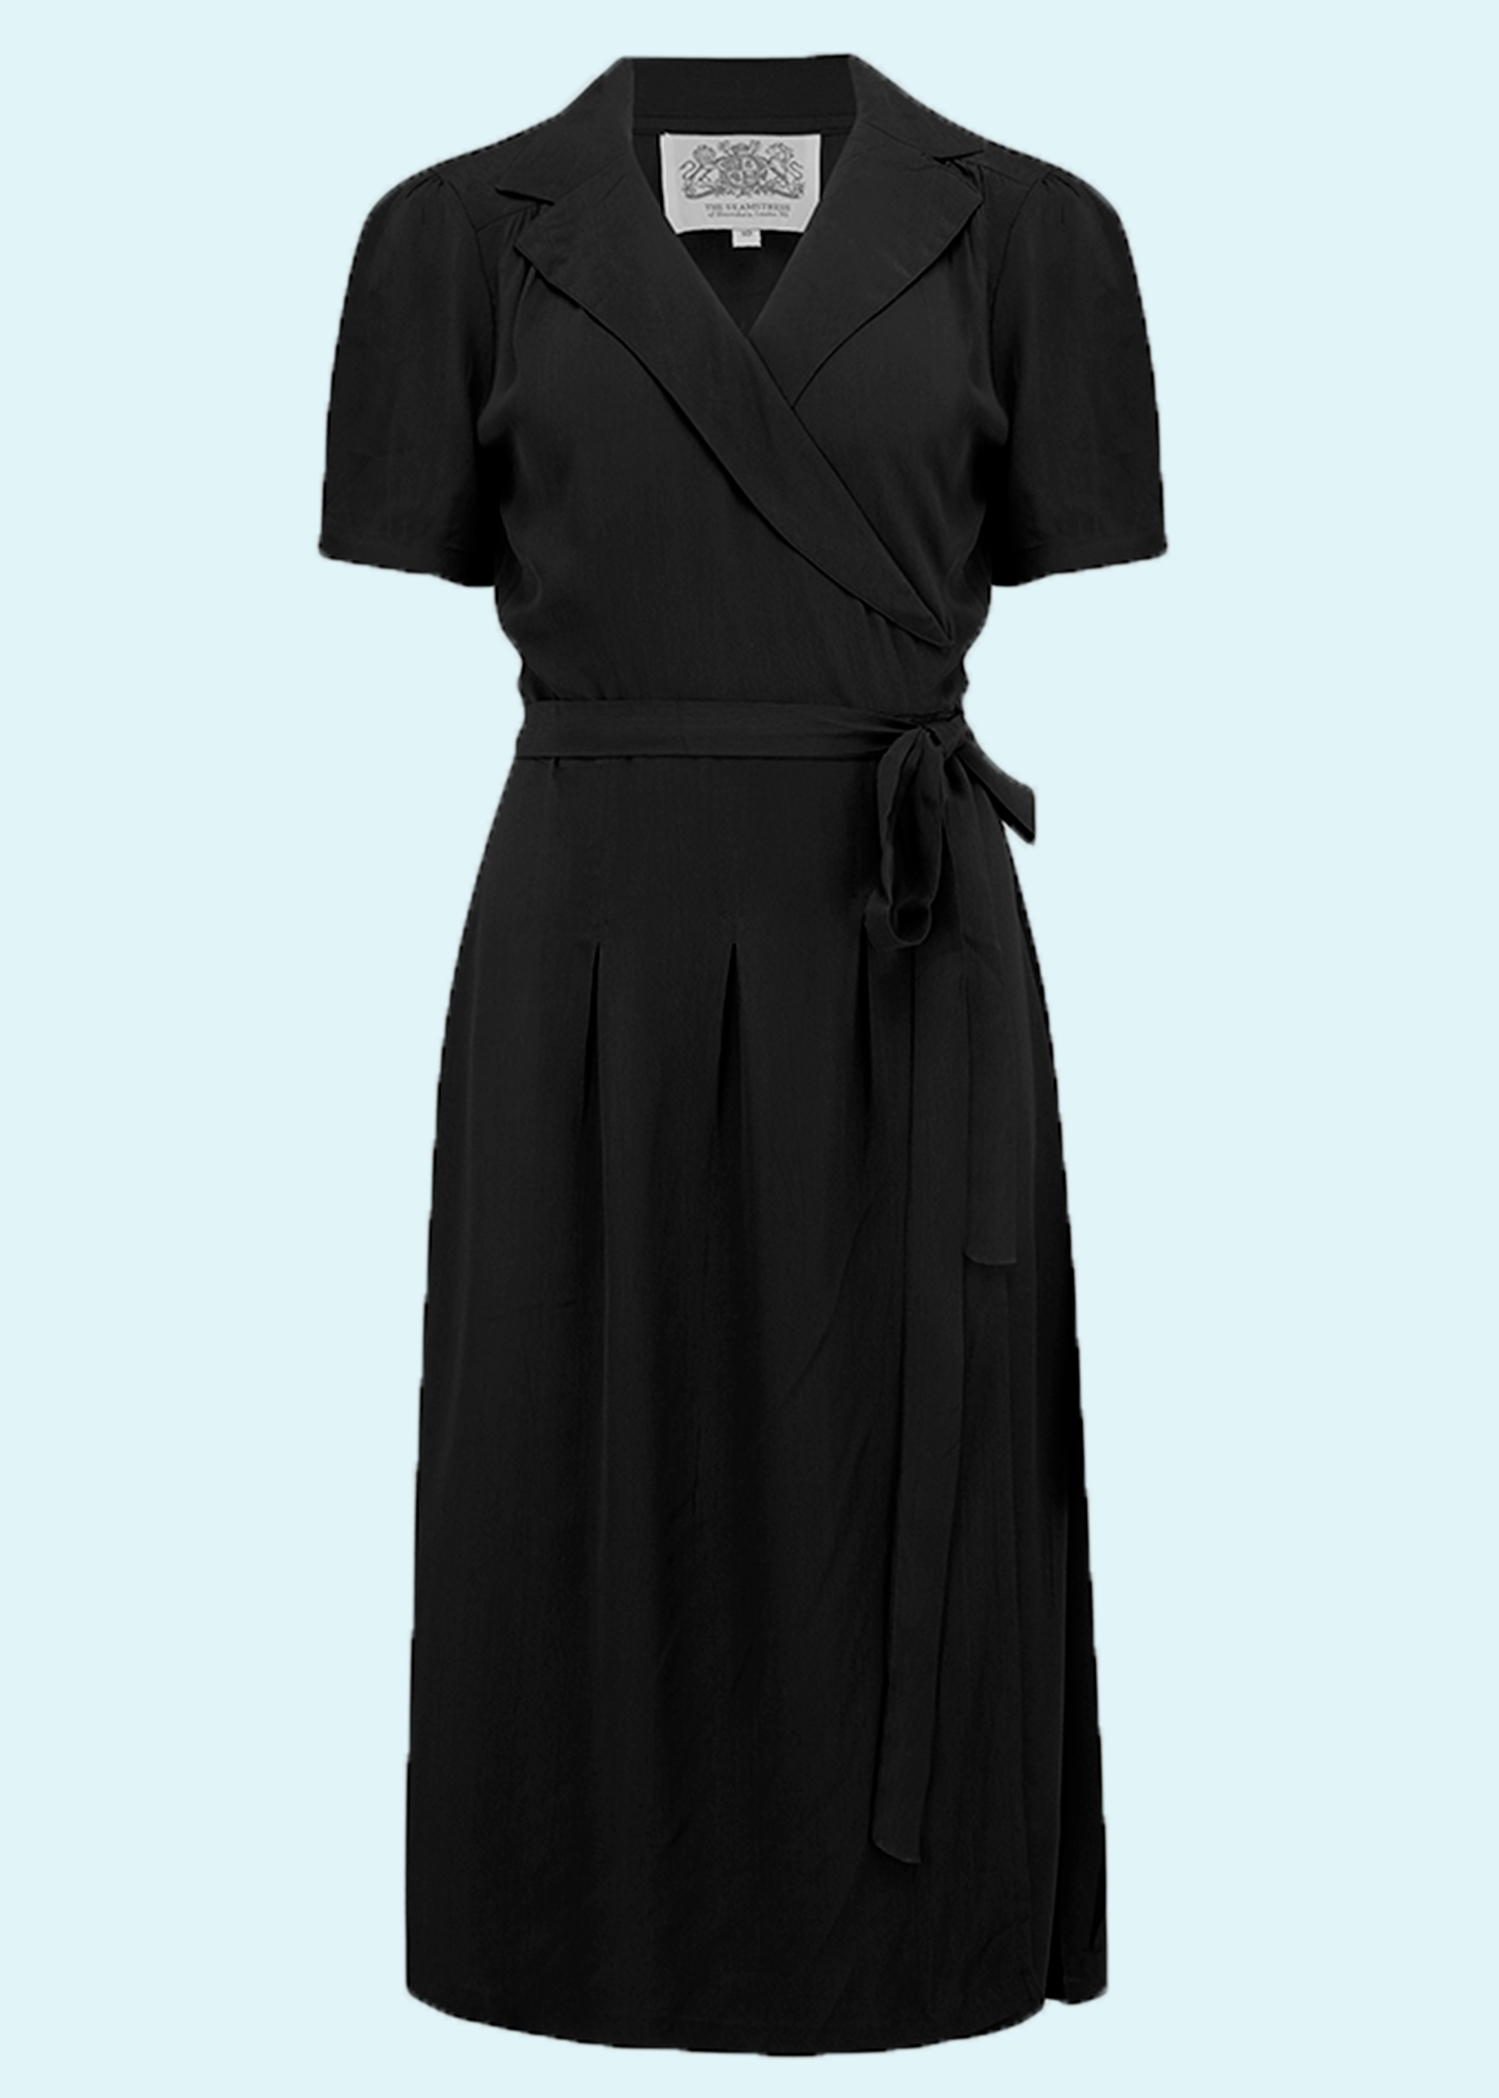 1940s vintage inspired wrap dress in black from seamstress of bloomsbury